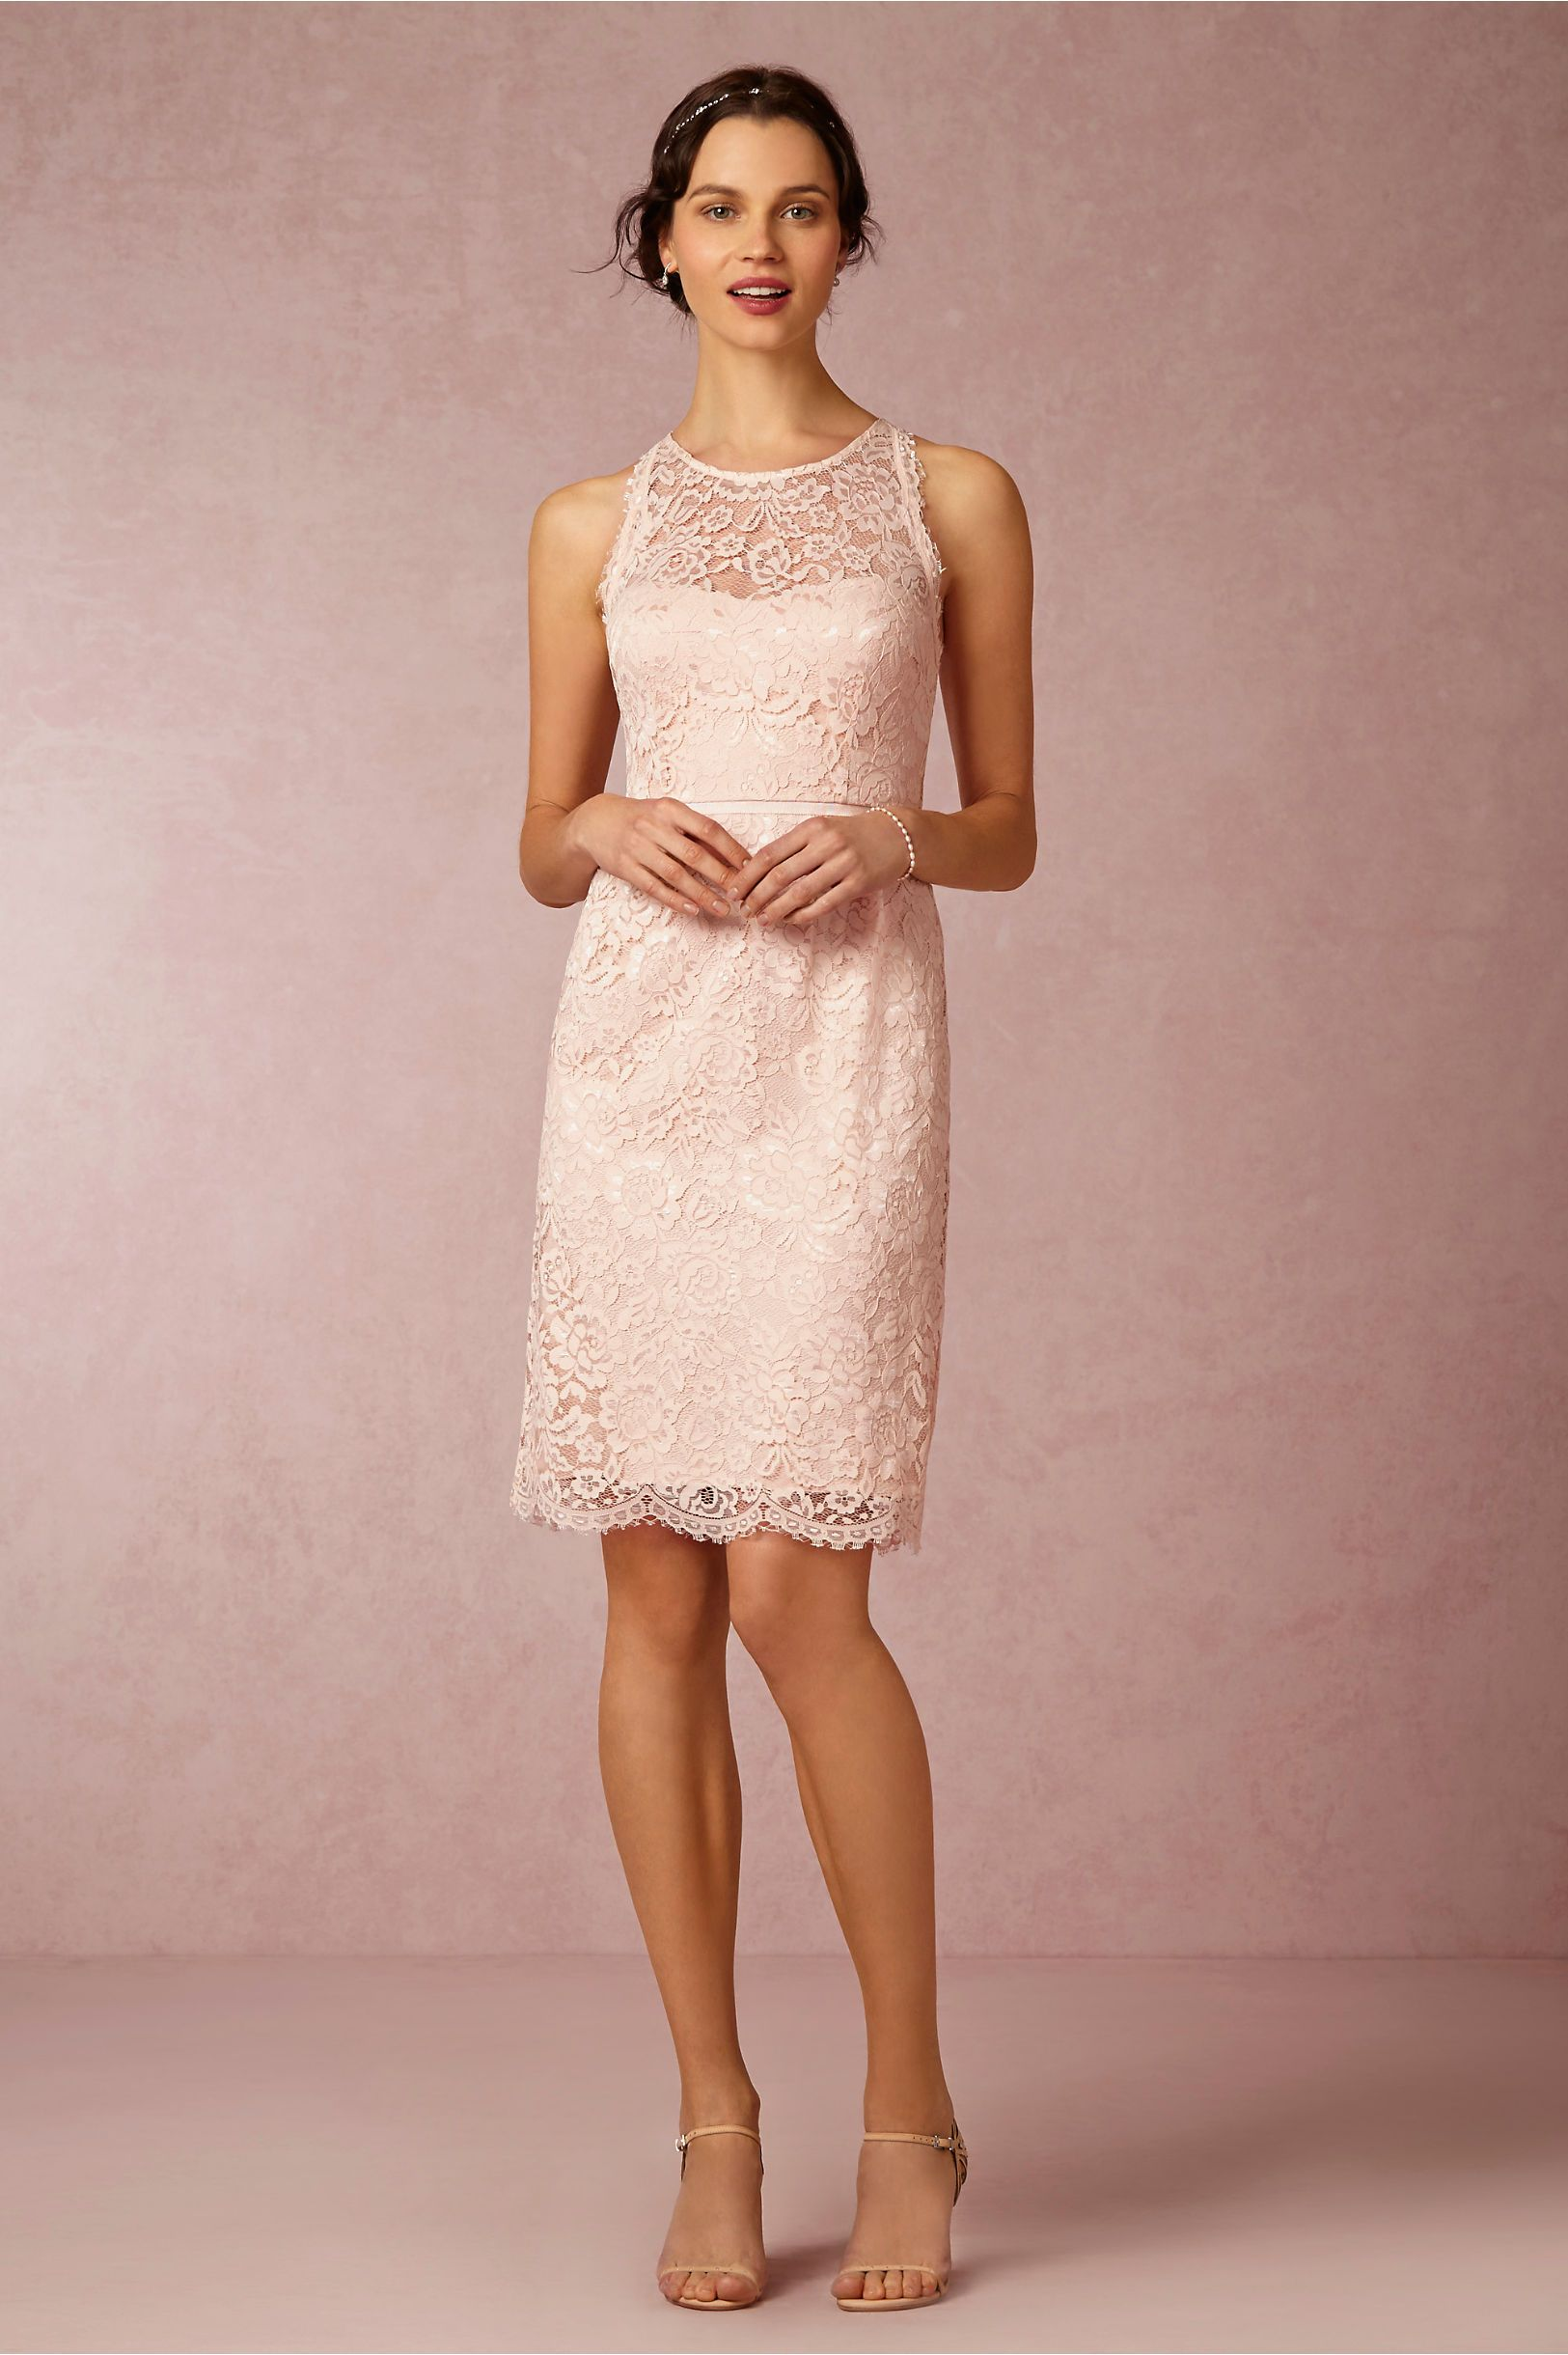 Sloane Dress in Bridal Party & Guests Bridesmaids Dresses at BHLDN ...